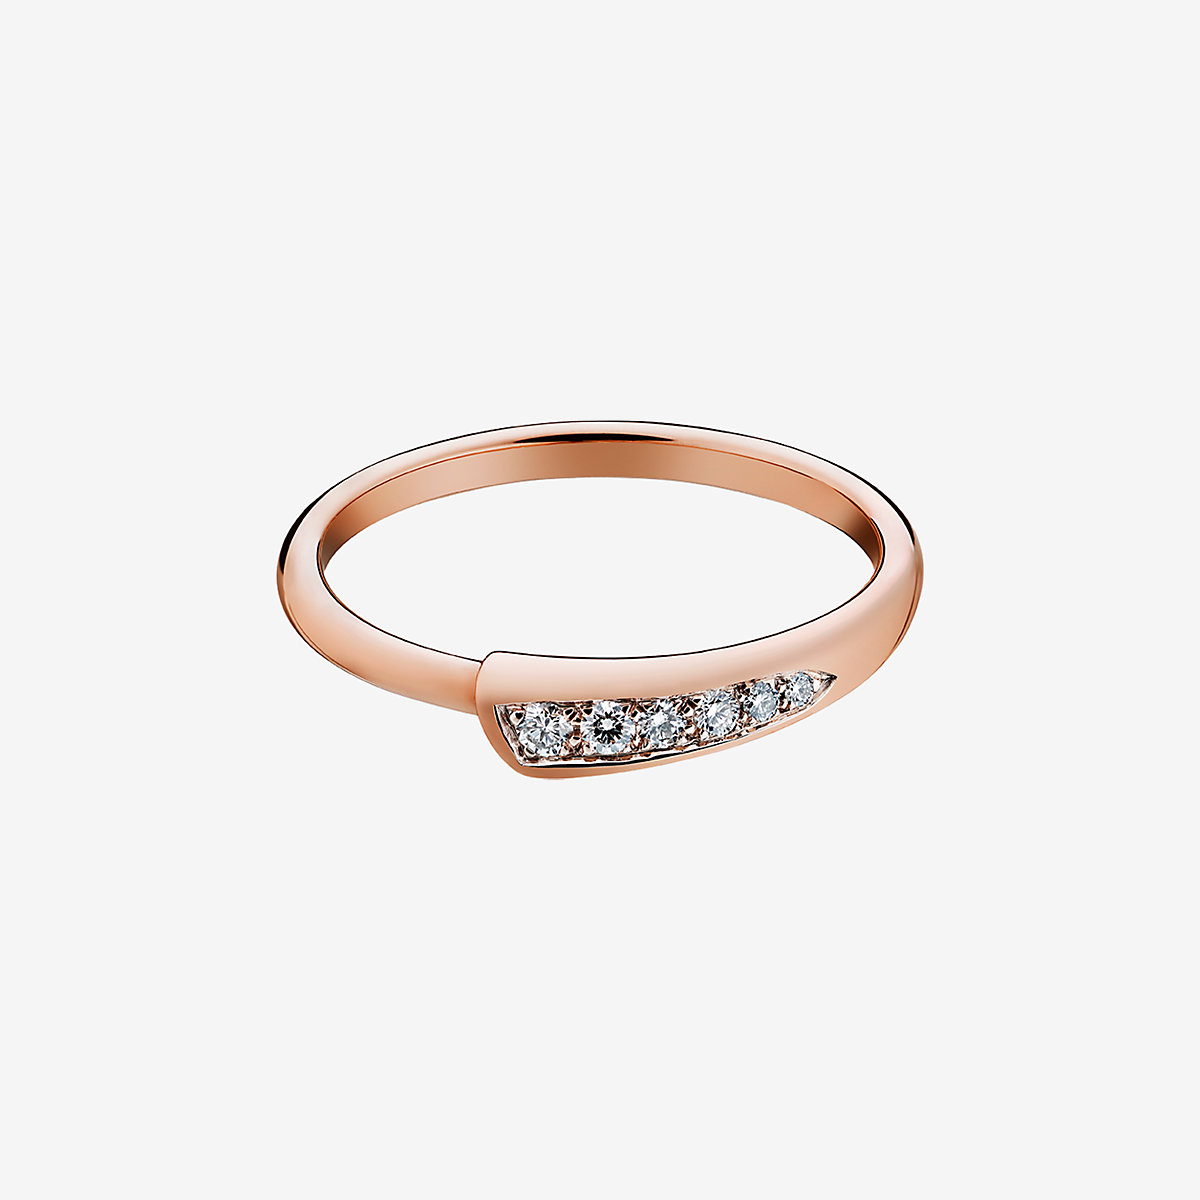 http://assets.hermes.com/is/image/hermesproduct/chaine-d-ancre-punk-ring--217636B%2000-front-1-0-0-1200-1200.jpg